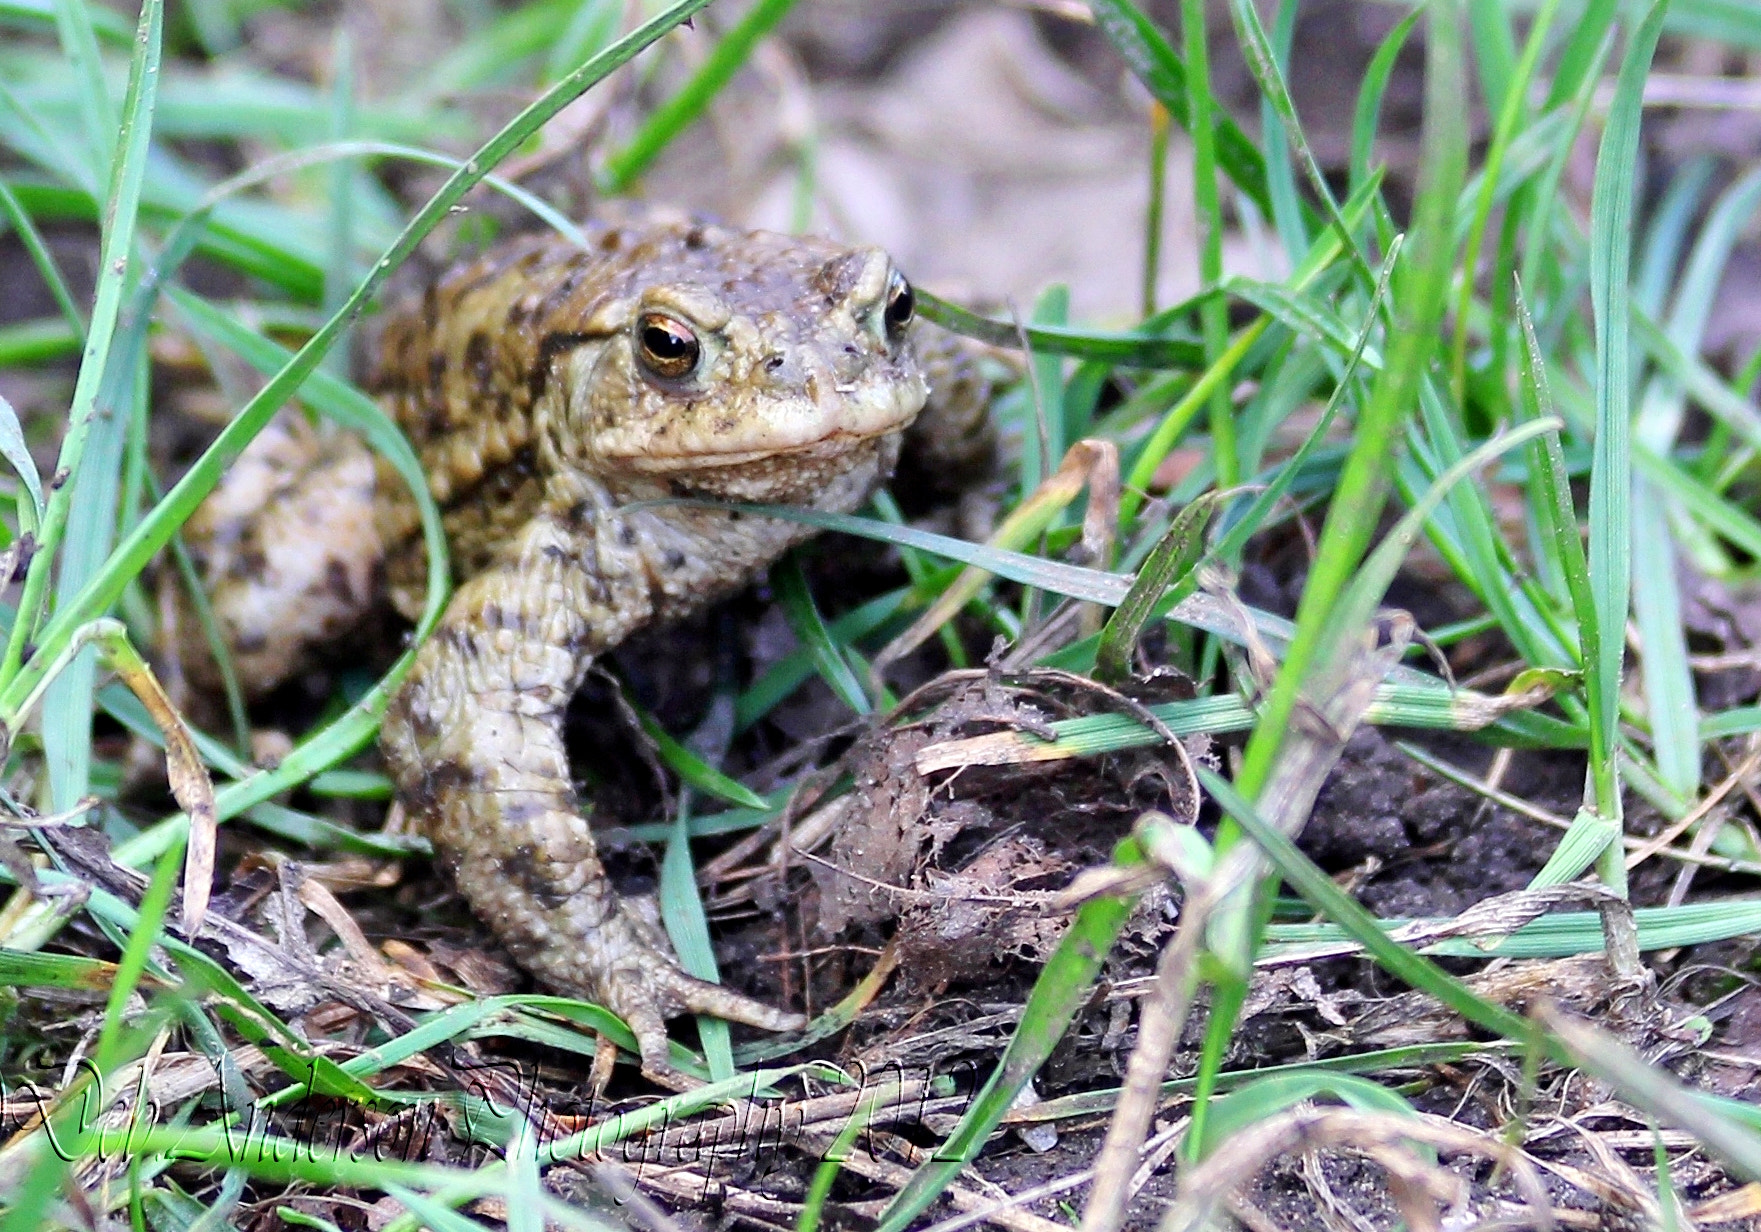 Photograph Common Toad. by Deborah Anderson-Marland on 500px